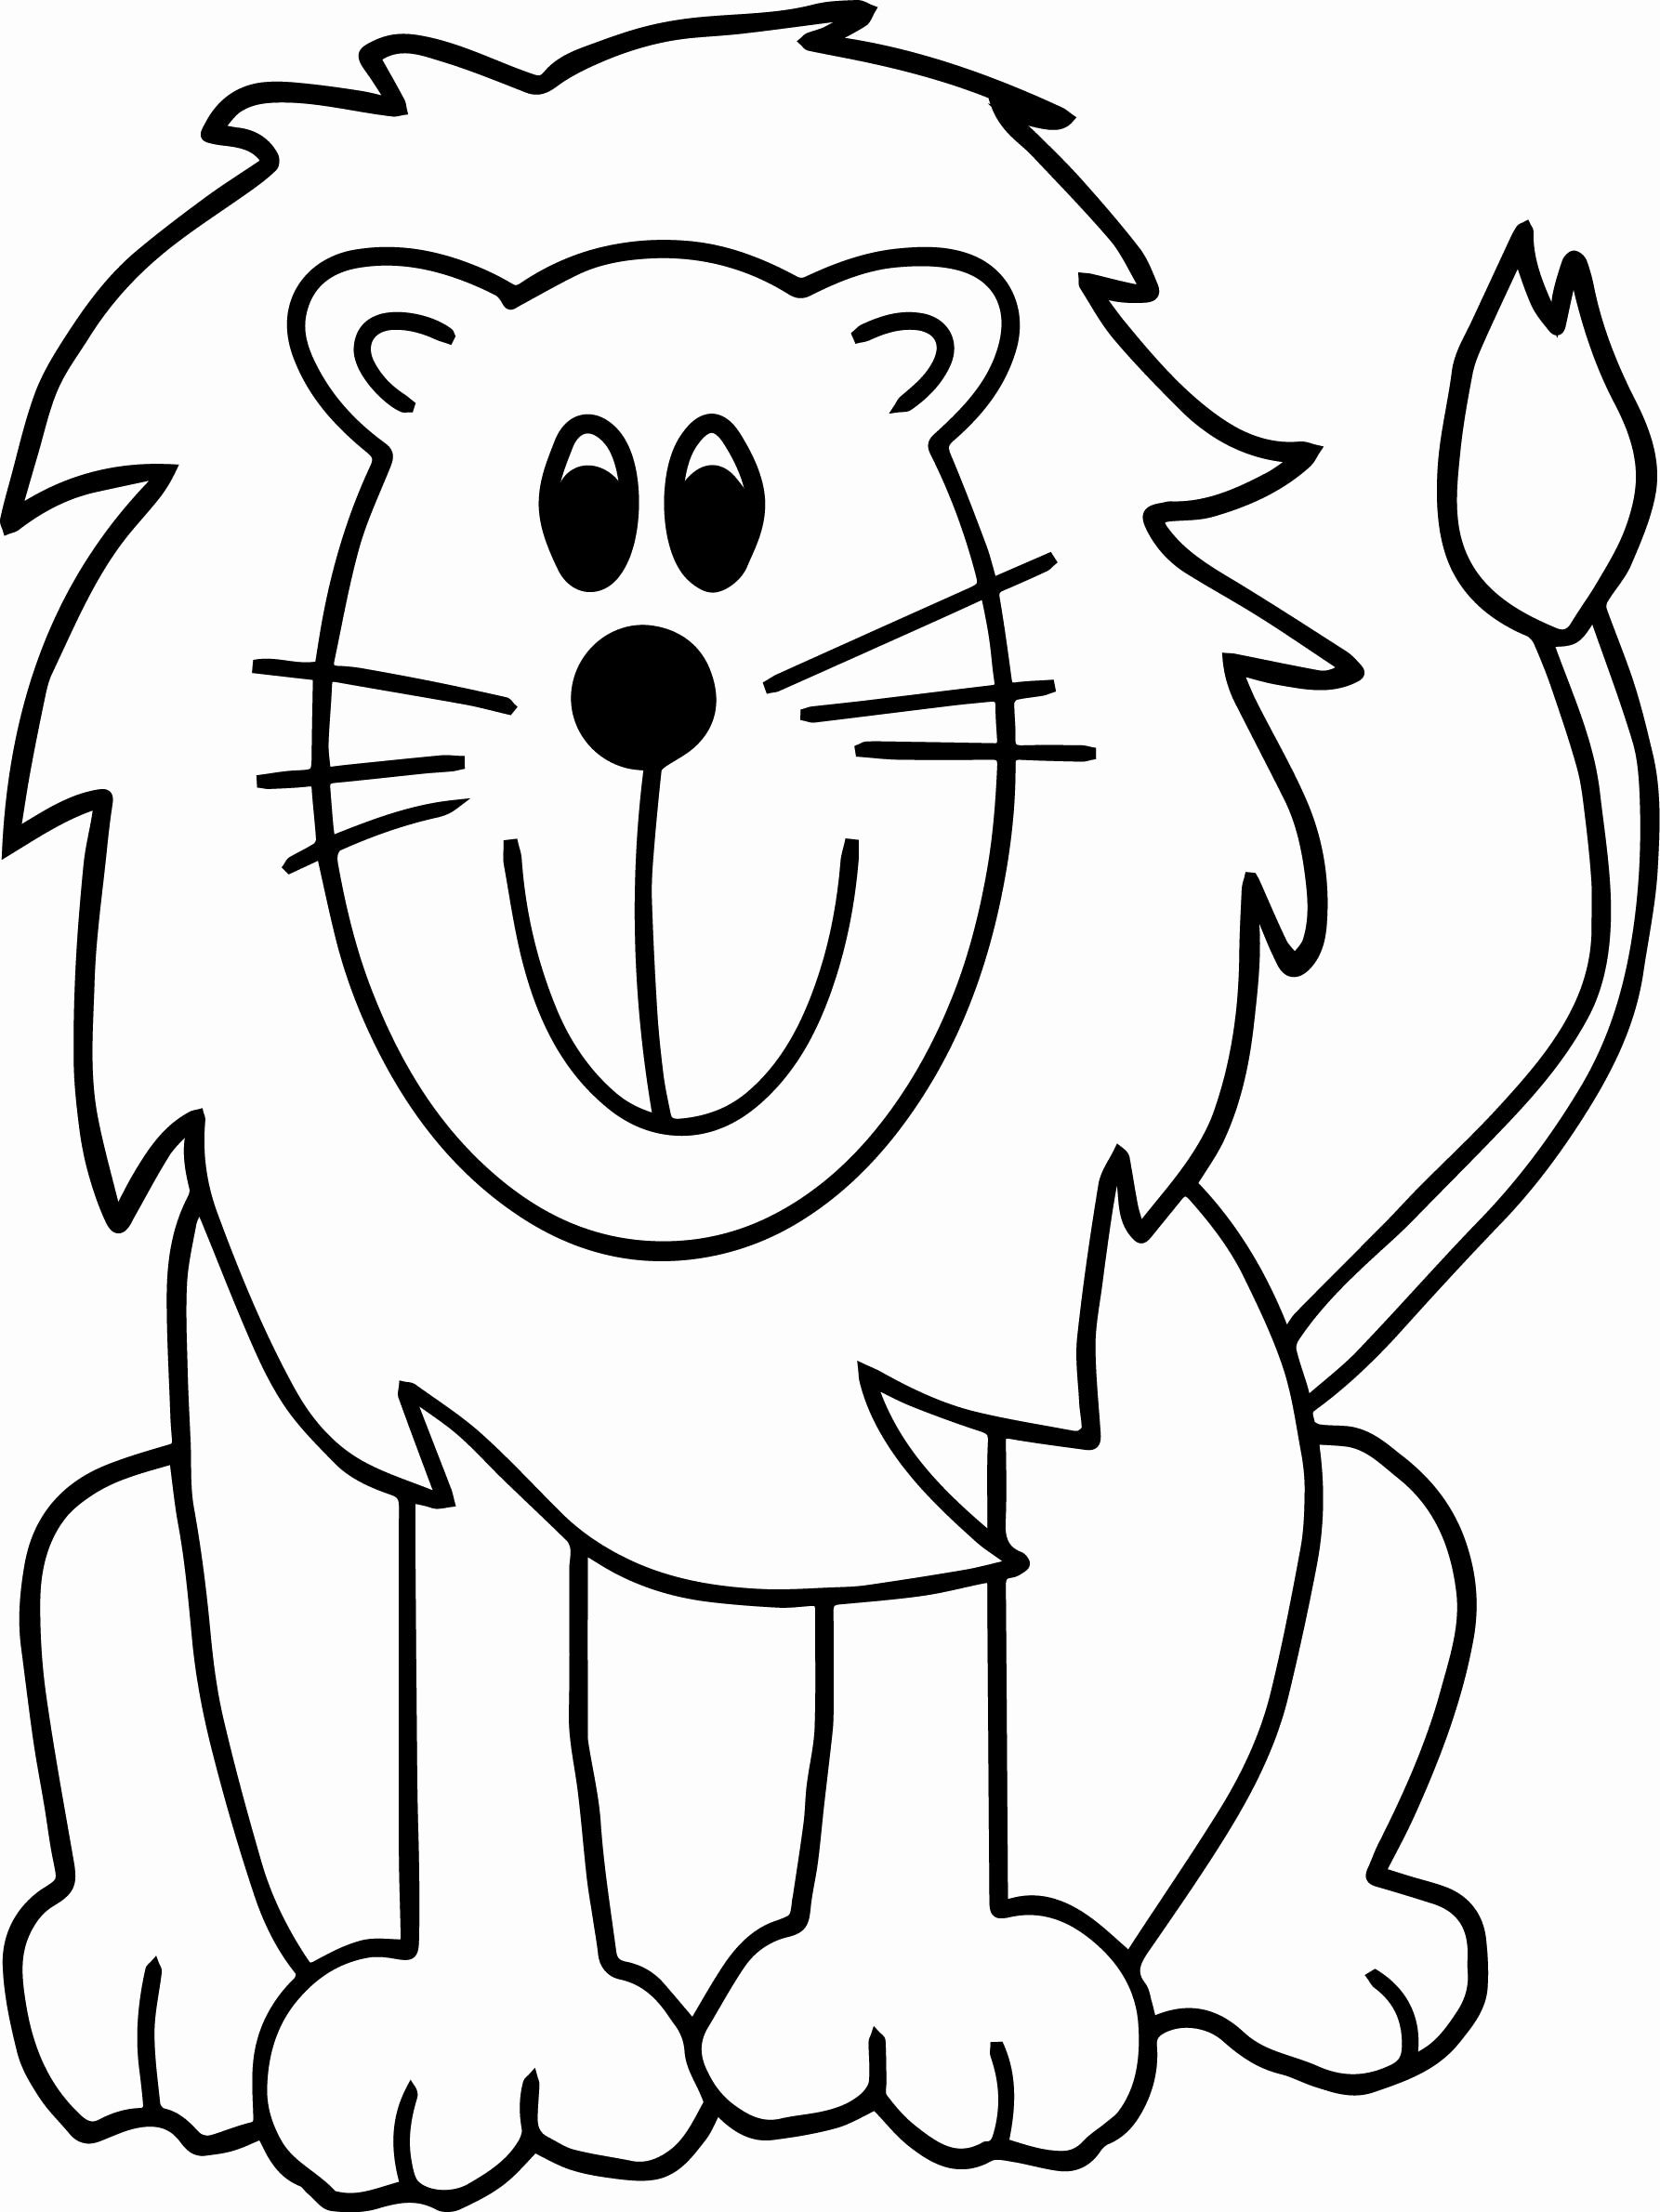 Coloring Pages Of Zoo Animals Awesome Lion Zoo Coloring Page Lion Coloring Pages Zoo Animal Coloring Pages Zoo Coloring Pages